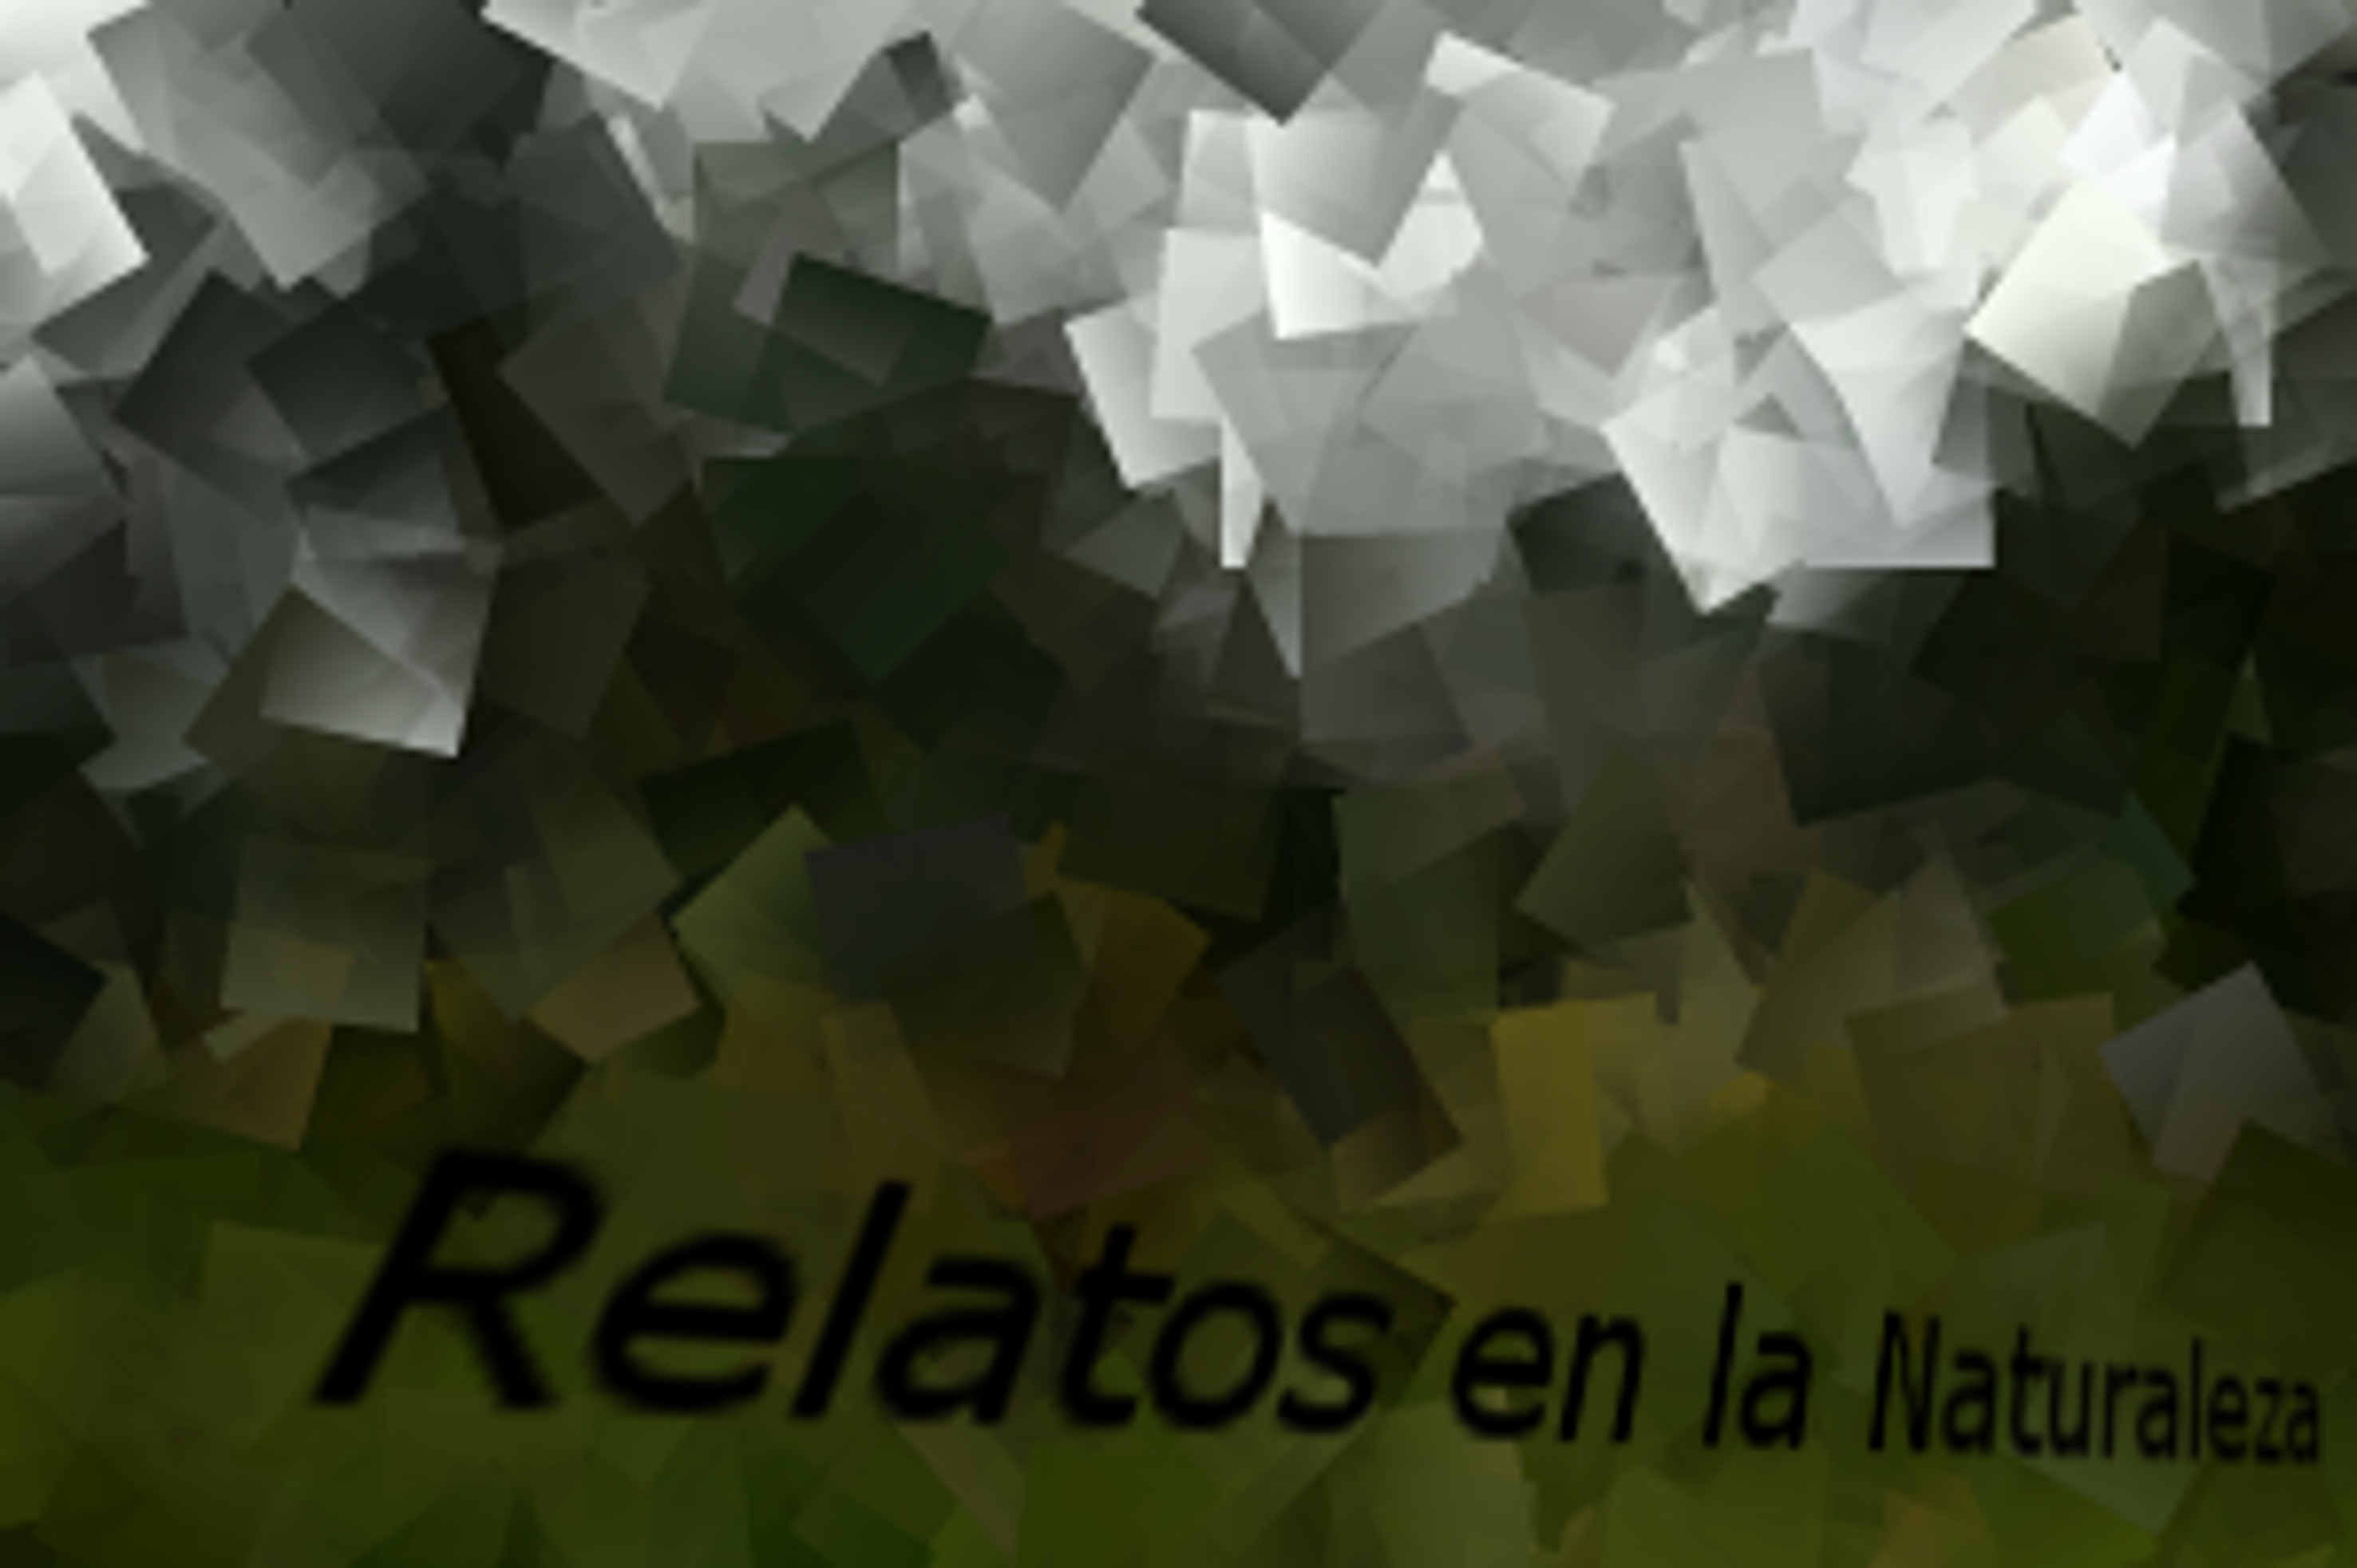 Relatos en la naturaleza